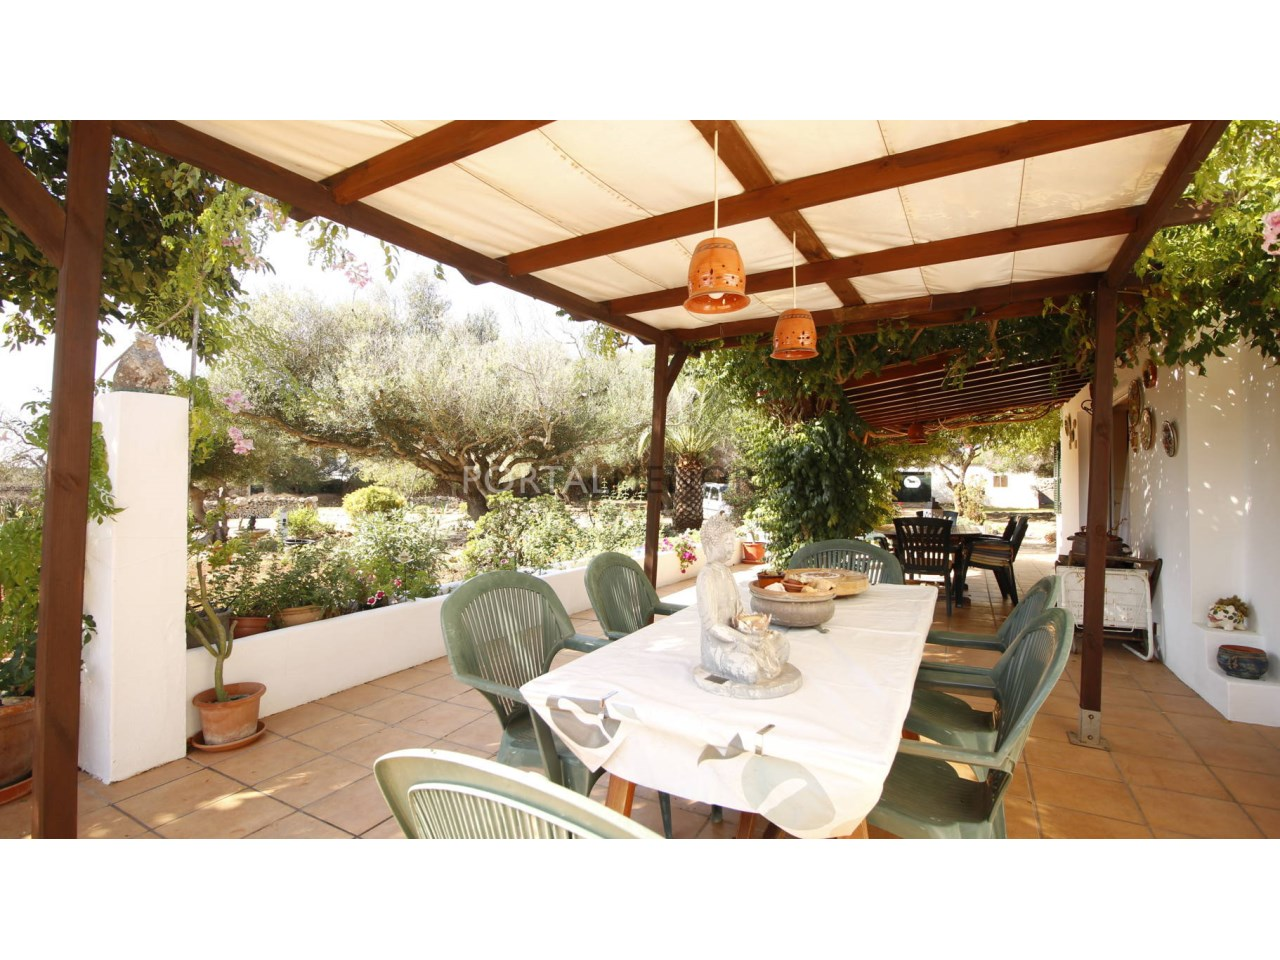 Country house for sale in Menorca with covered terrace